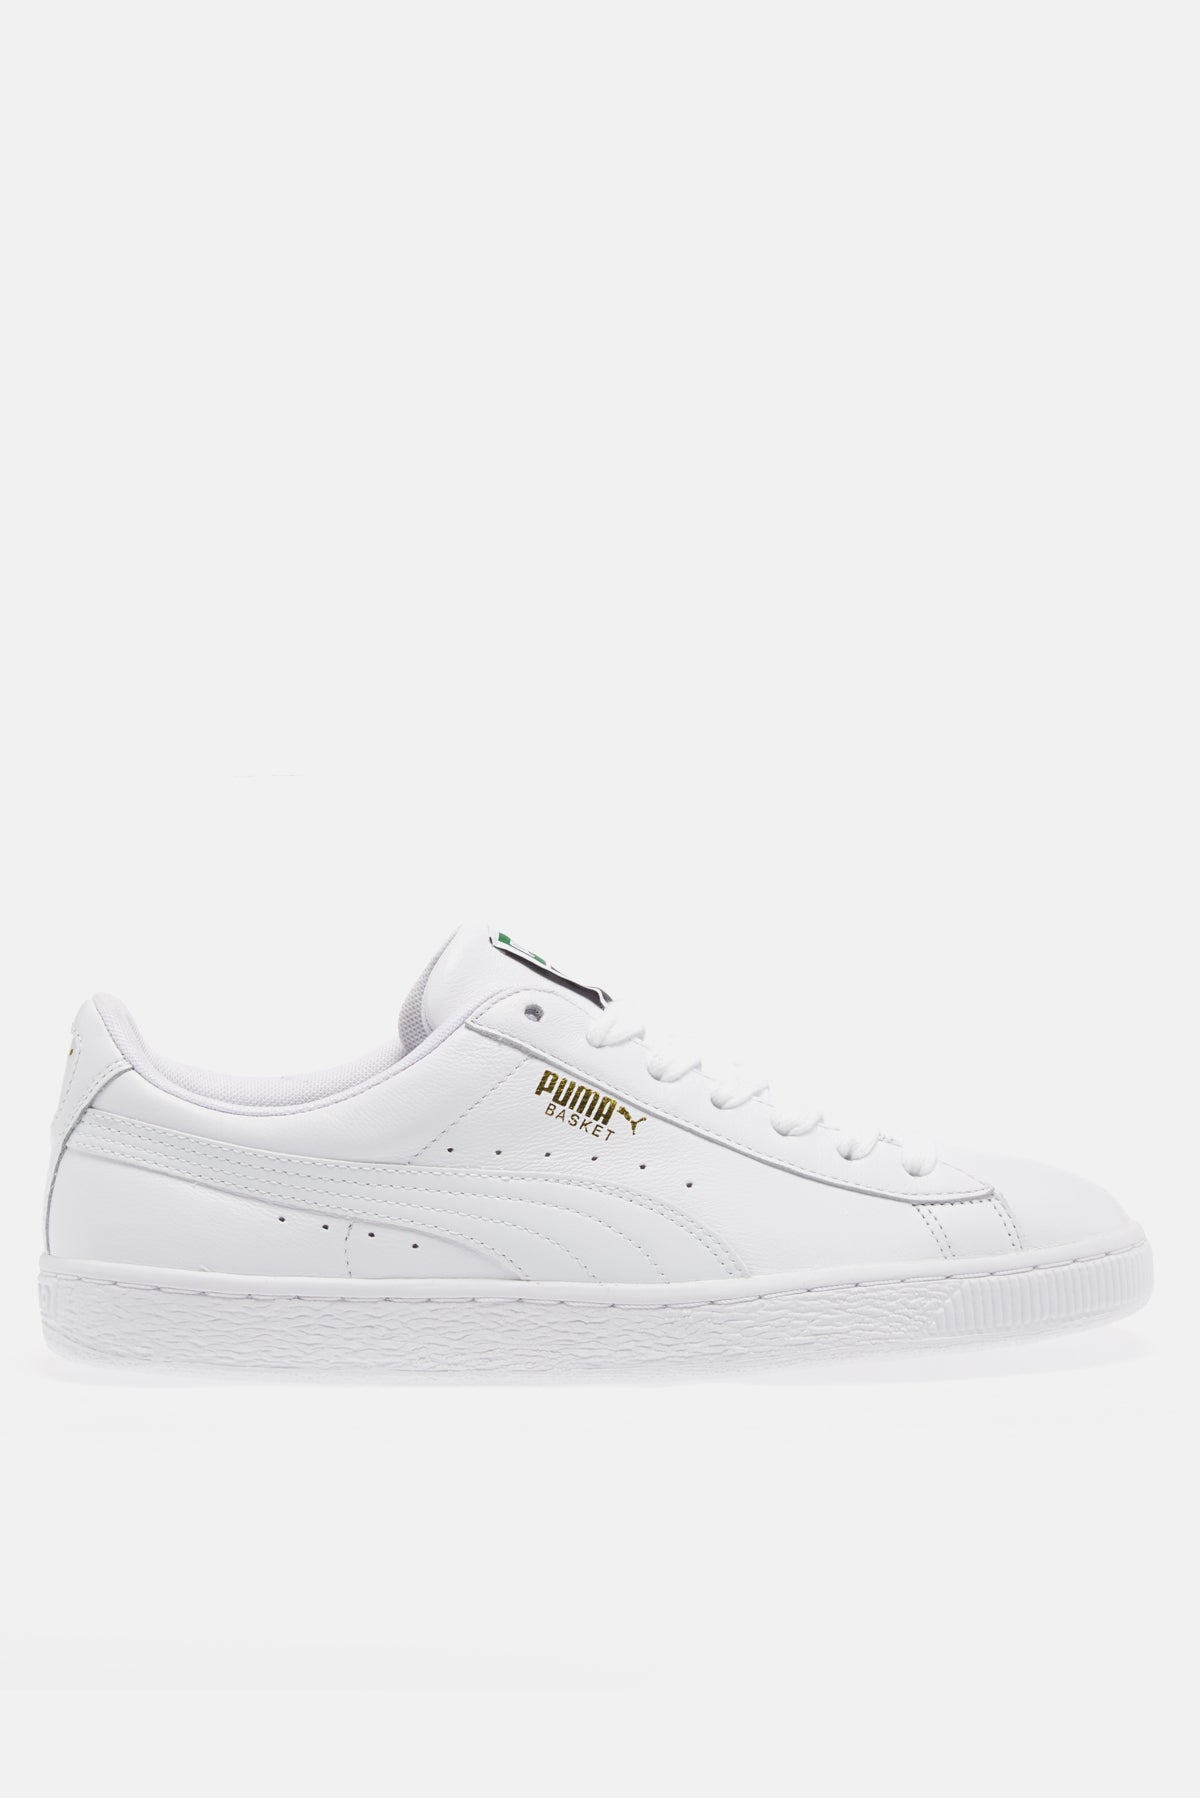 Puma Basket Classic Lfs Shoes available from Priory 27ada91a5